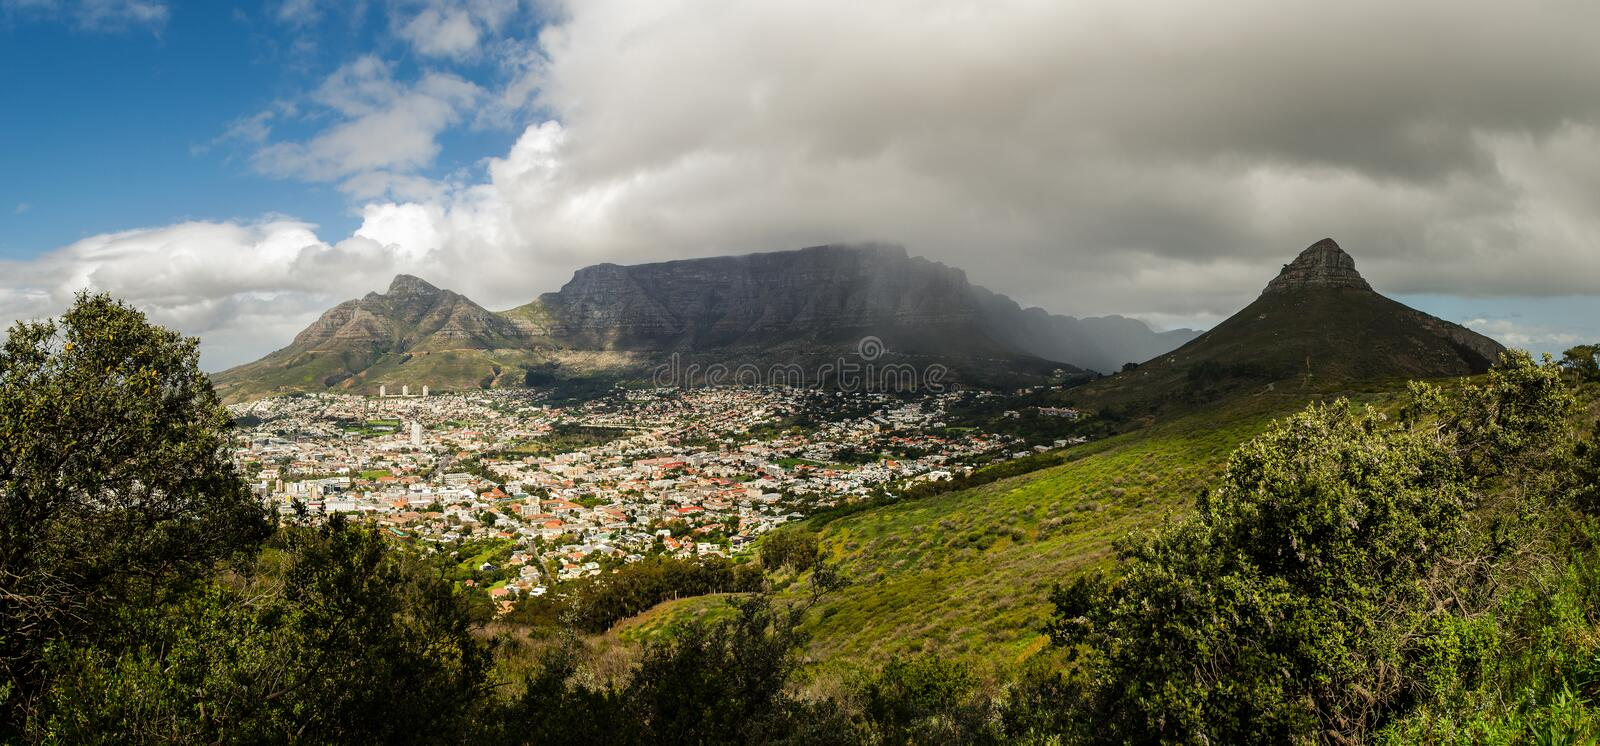 Table mountain, Cape Town, delvil`s peak, lion head panoramic landscape. South Africa. Table mountain, Cape Town, delvil`s peak, lion head panoramic landscape royalty free stock photography